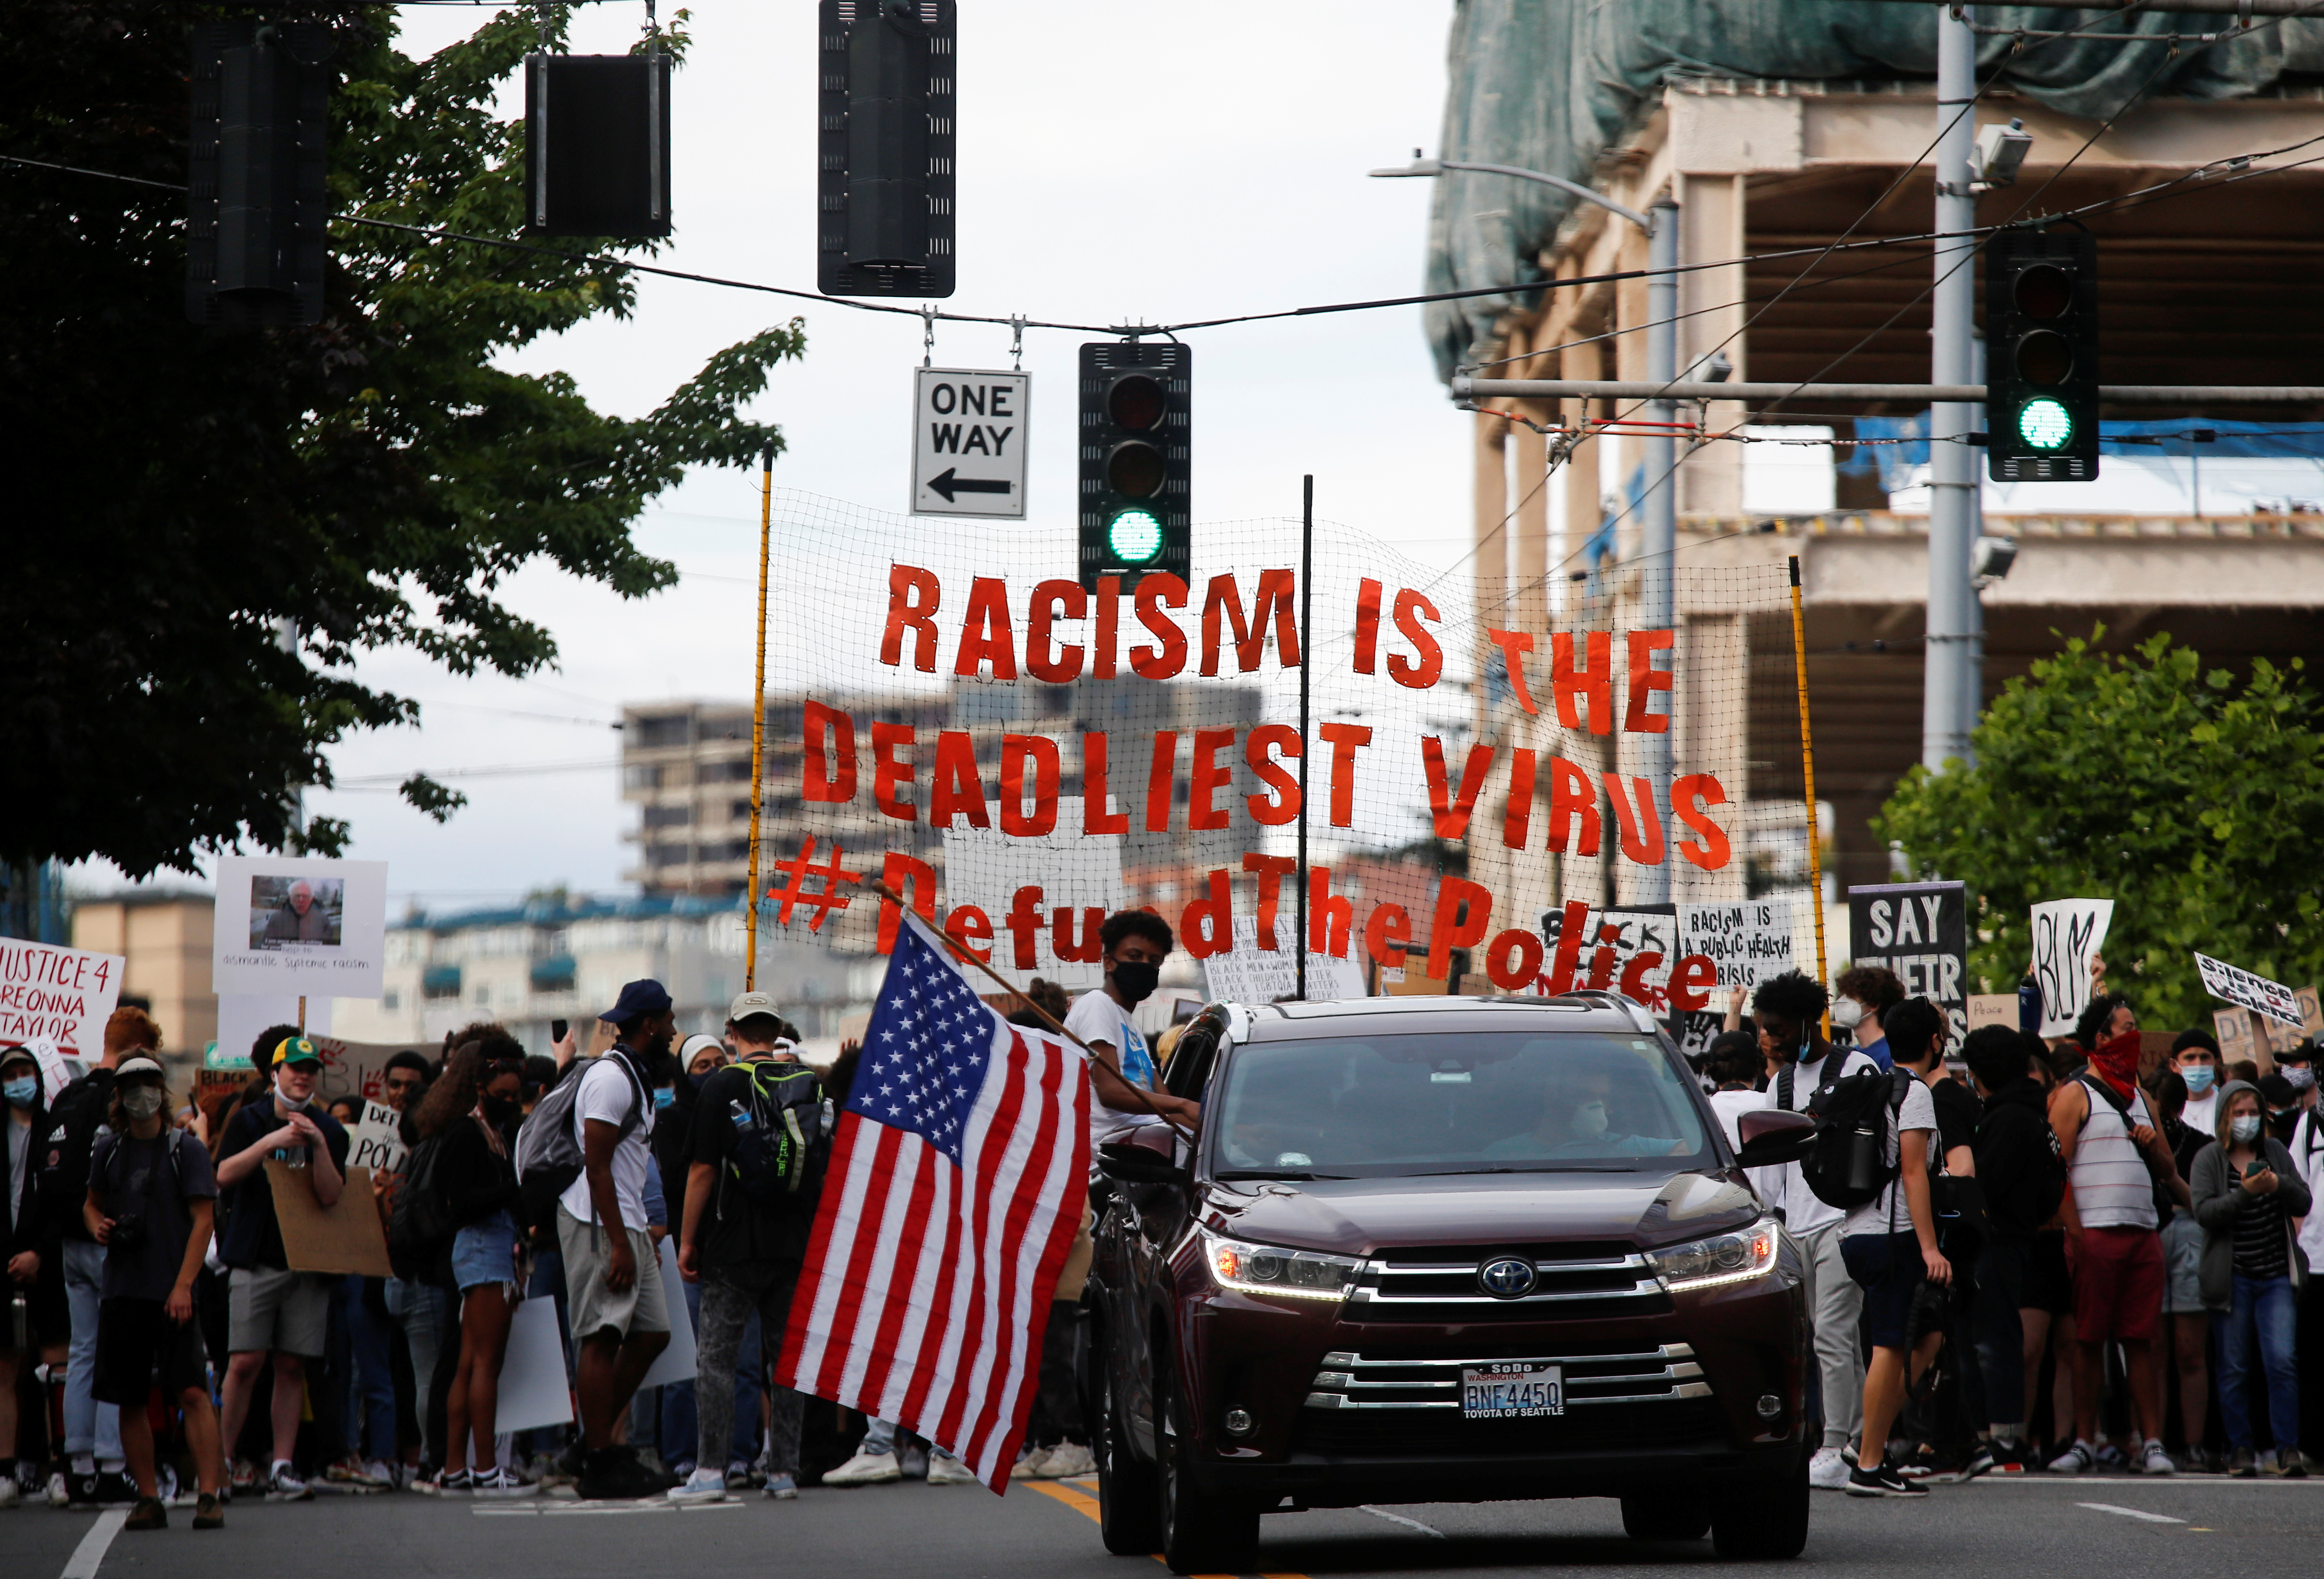 A protester sits out of the window of a car with an American flag as a youth-led protest group walks towards the Seattle Police Department's West Precinct in Seattle, Washington, U.S. June 10, 2020. REUTERS/Lindsey Wasson